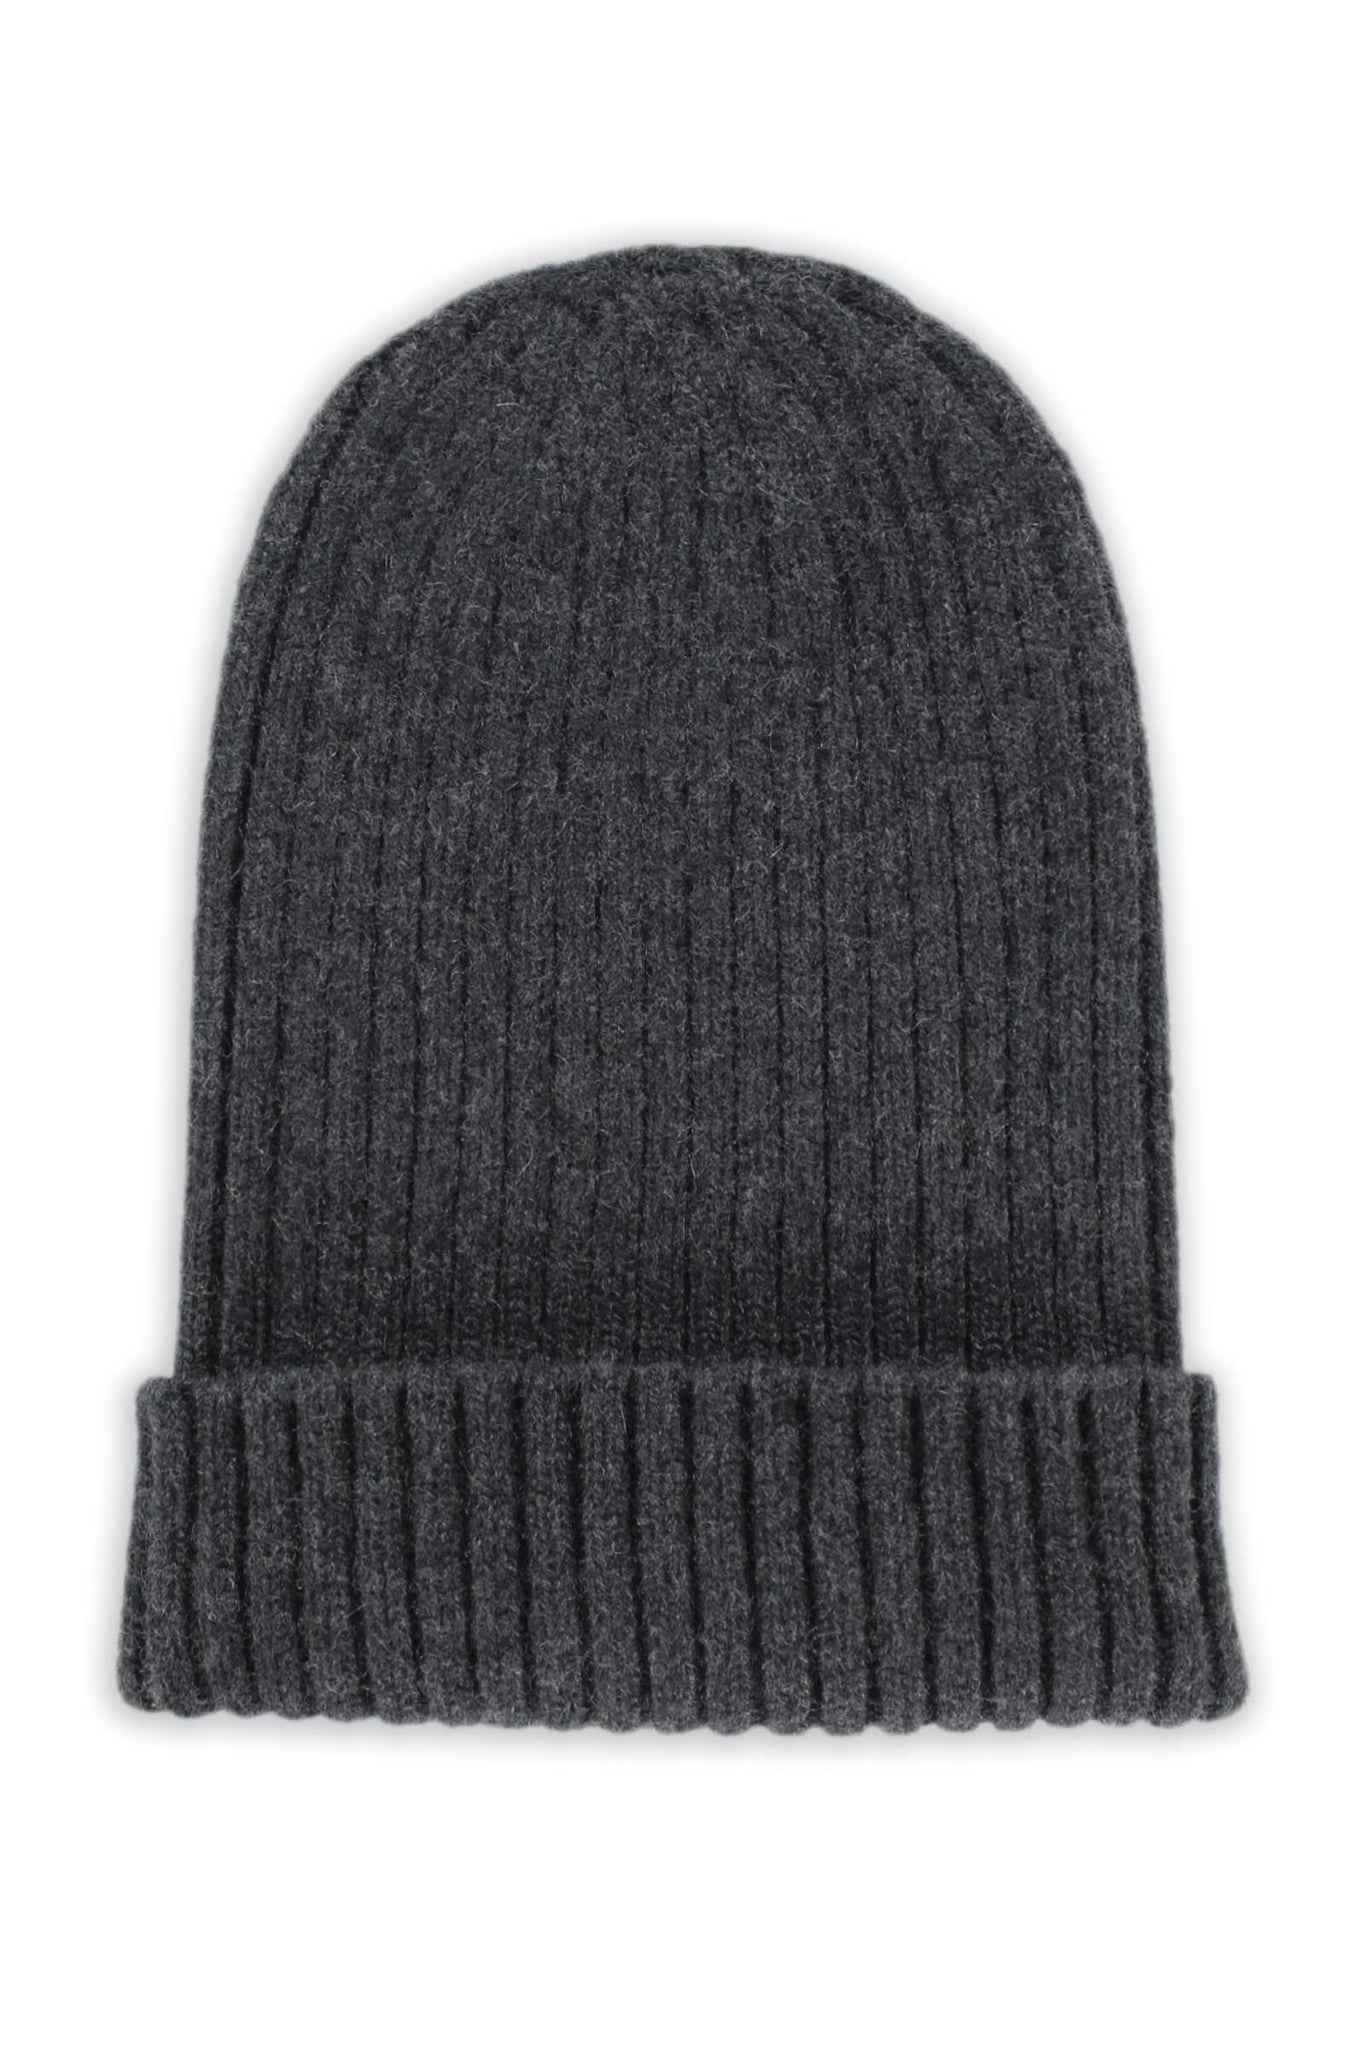 Charcoal Cashmere 2 x 2 Ribbed Beanie